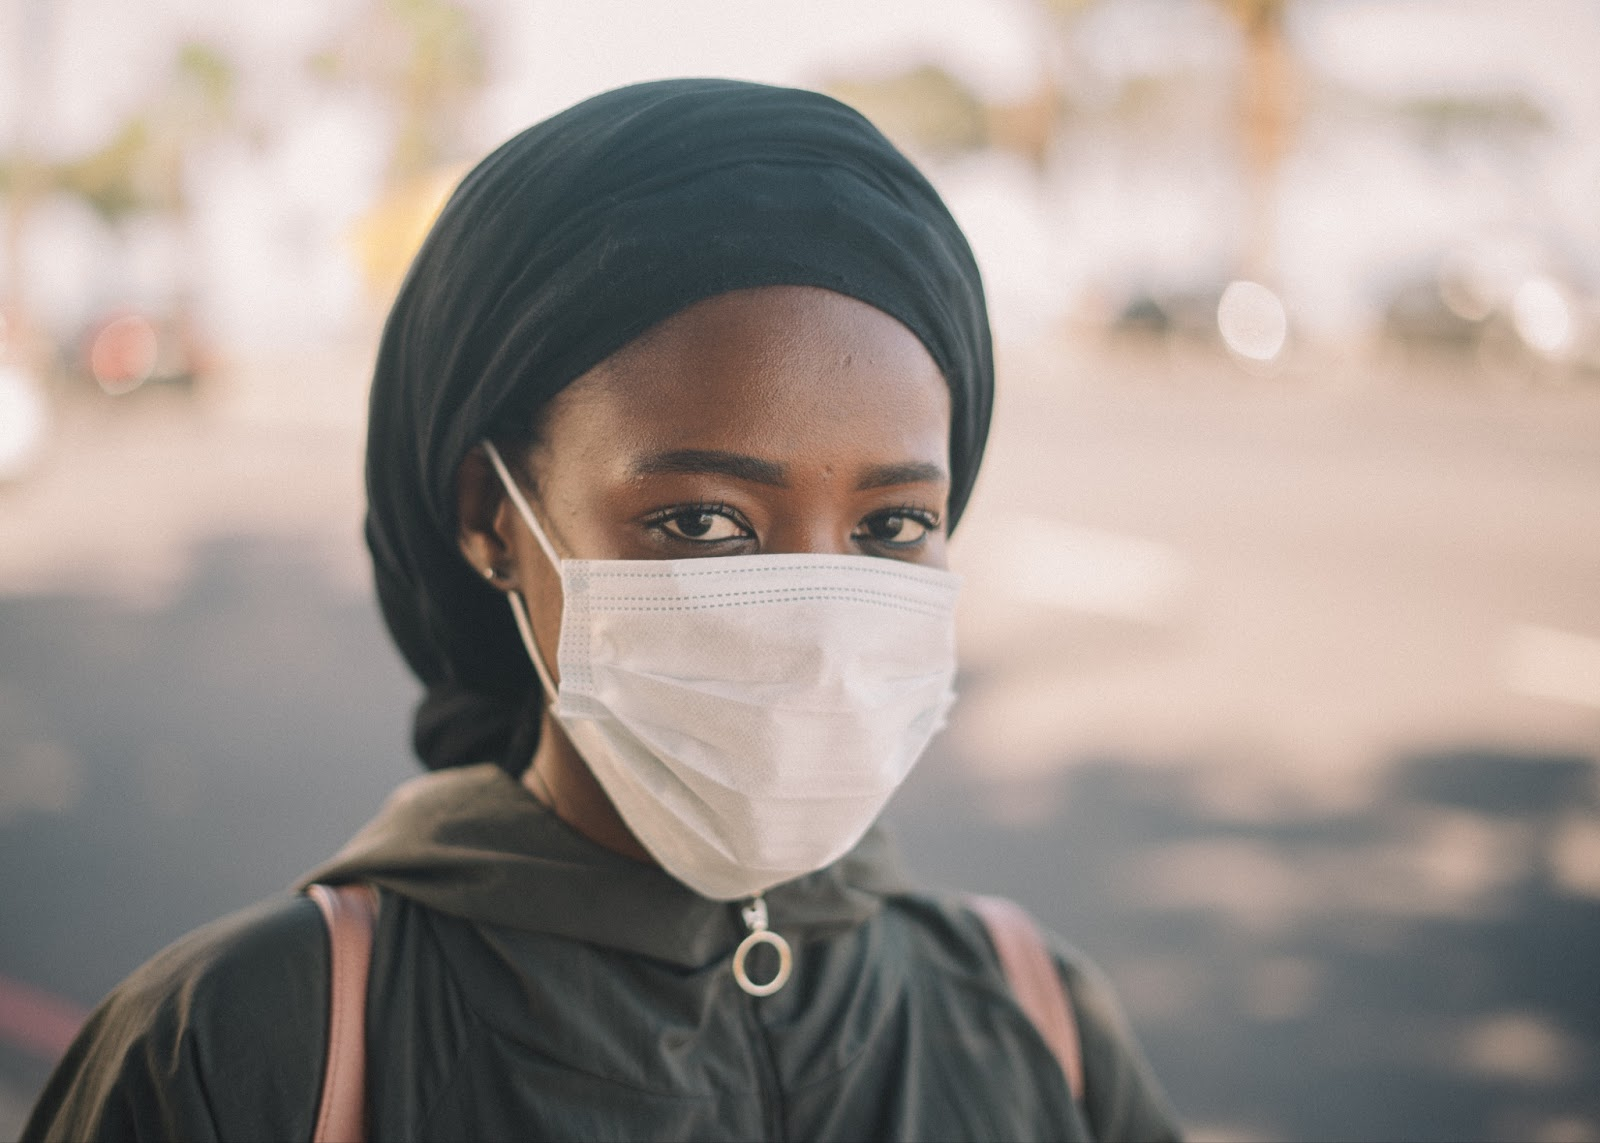 A young girl is the enter of the photo as the background is blurred. She wears all black, a head wrap, and a white surgical mask as she looks at the camera.